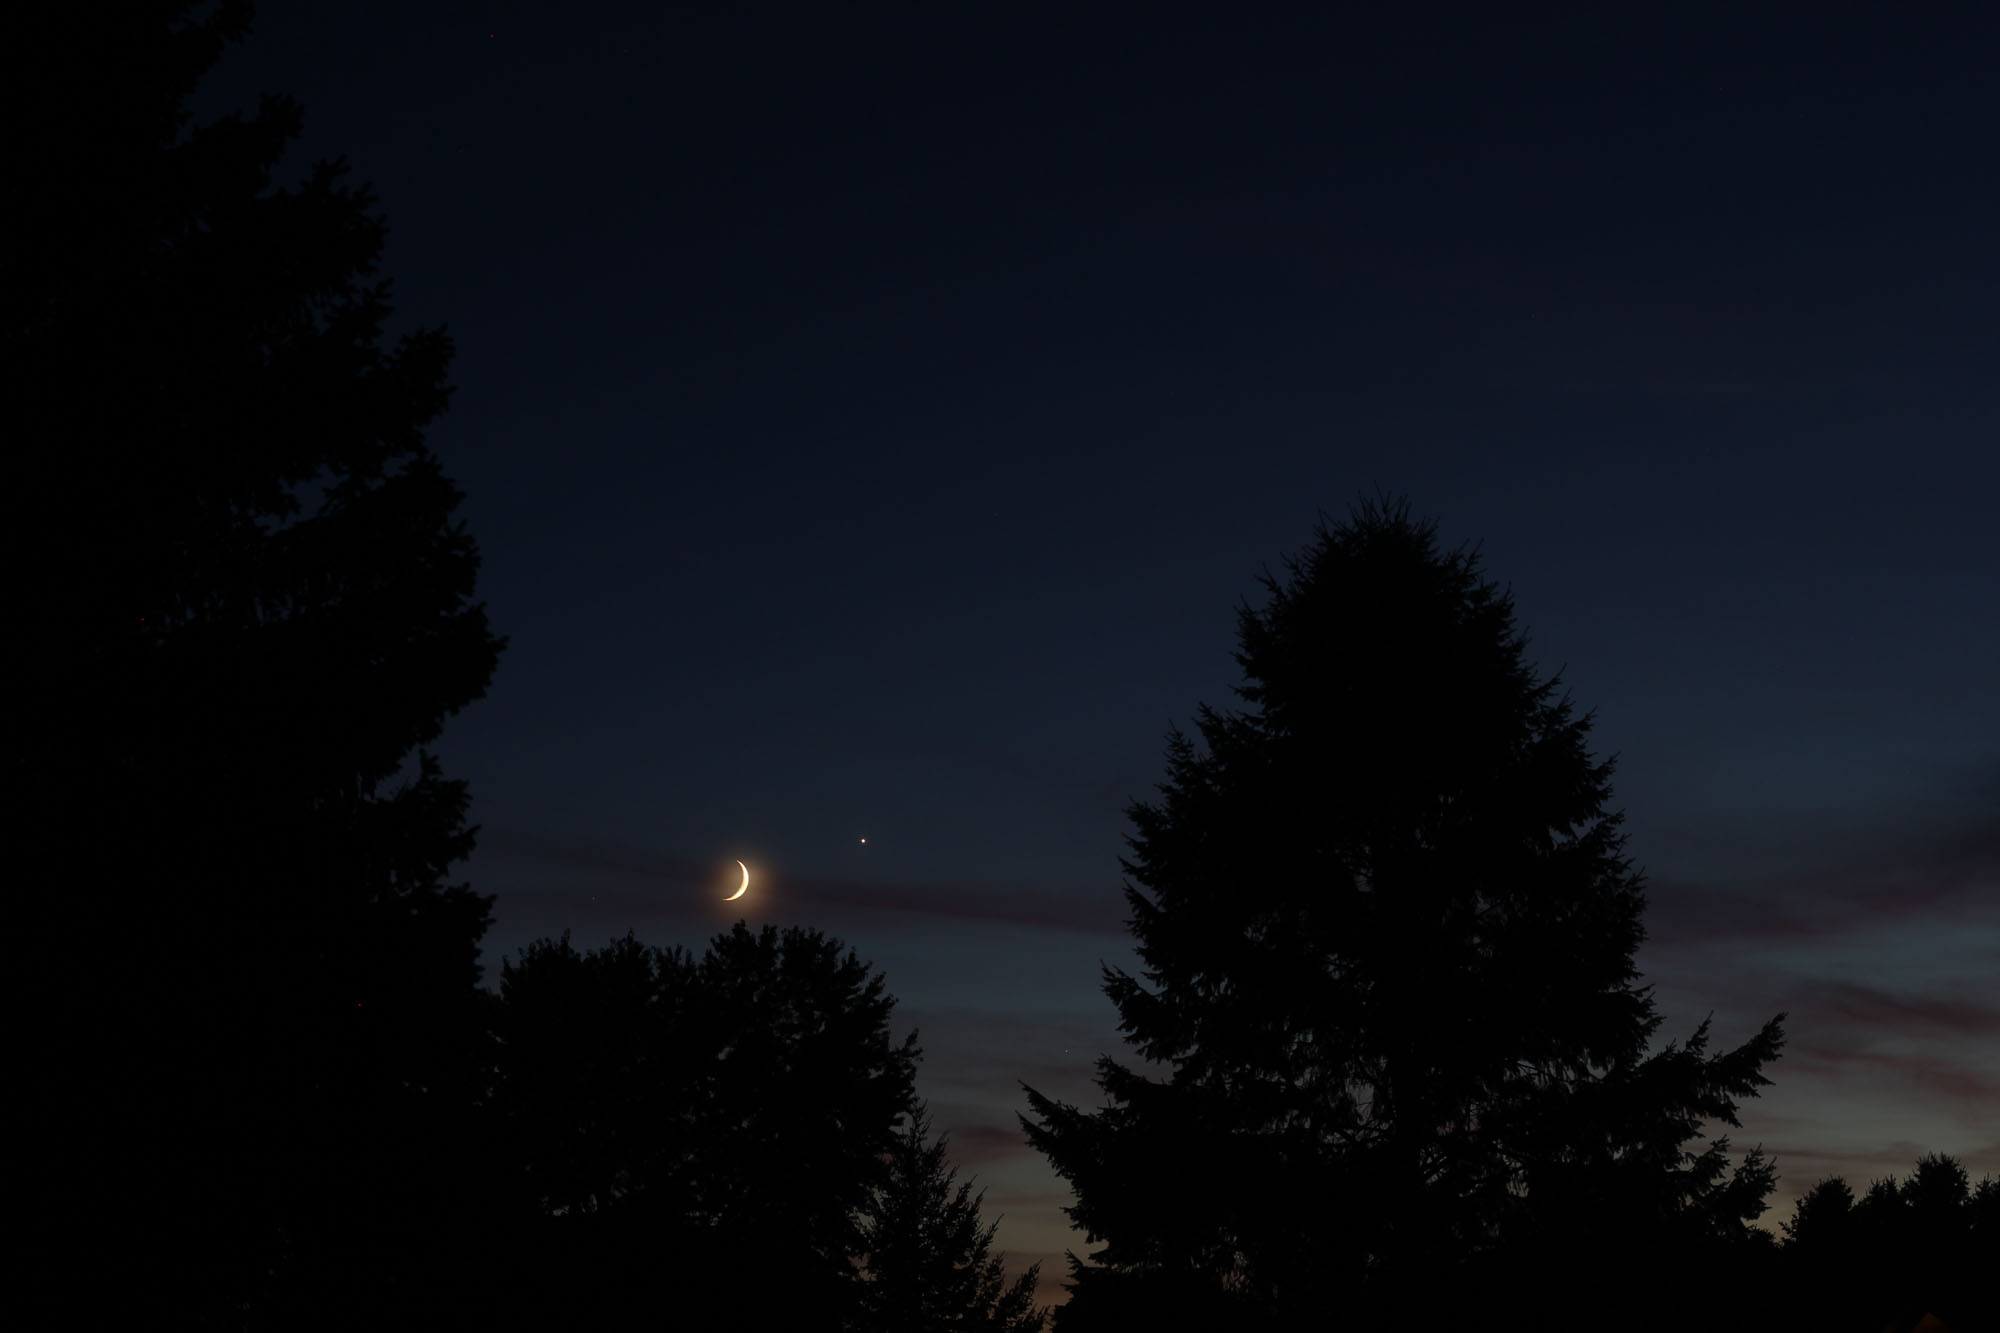 Venus Near Moon on Sept. 8, 2013: Samuel J. Hartman